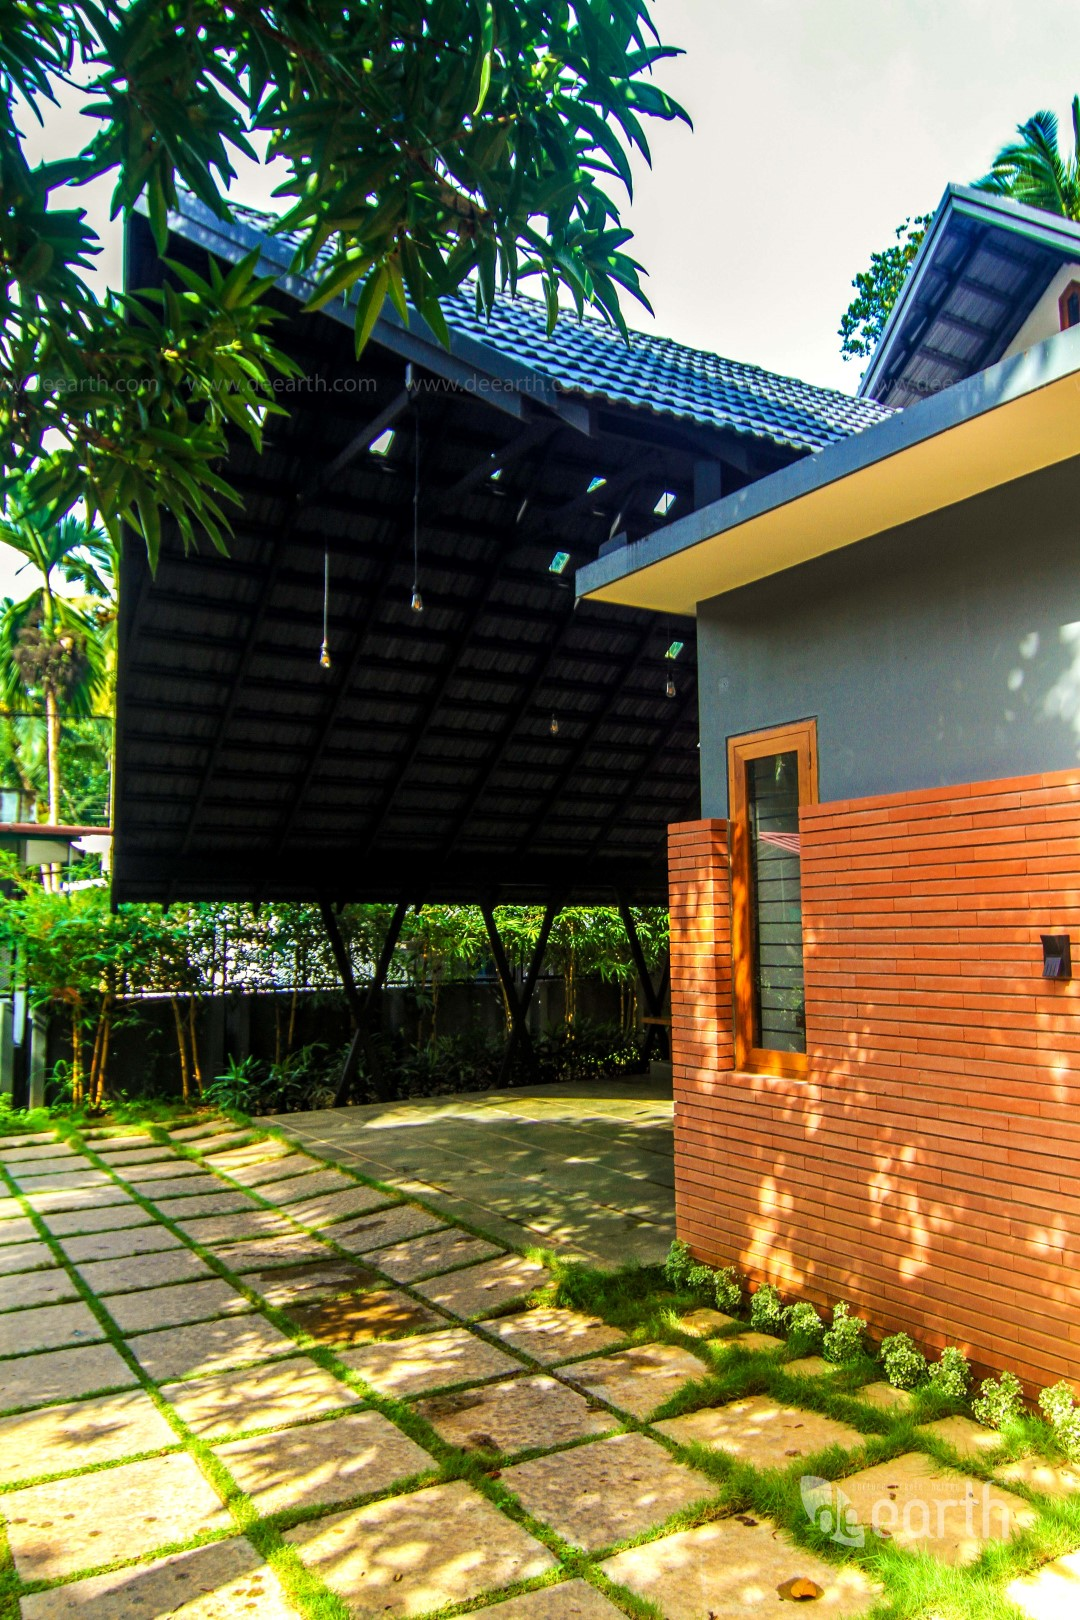 The Garden House Calicut De Earth The Architects Diary